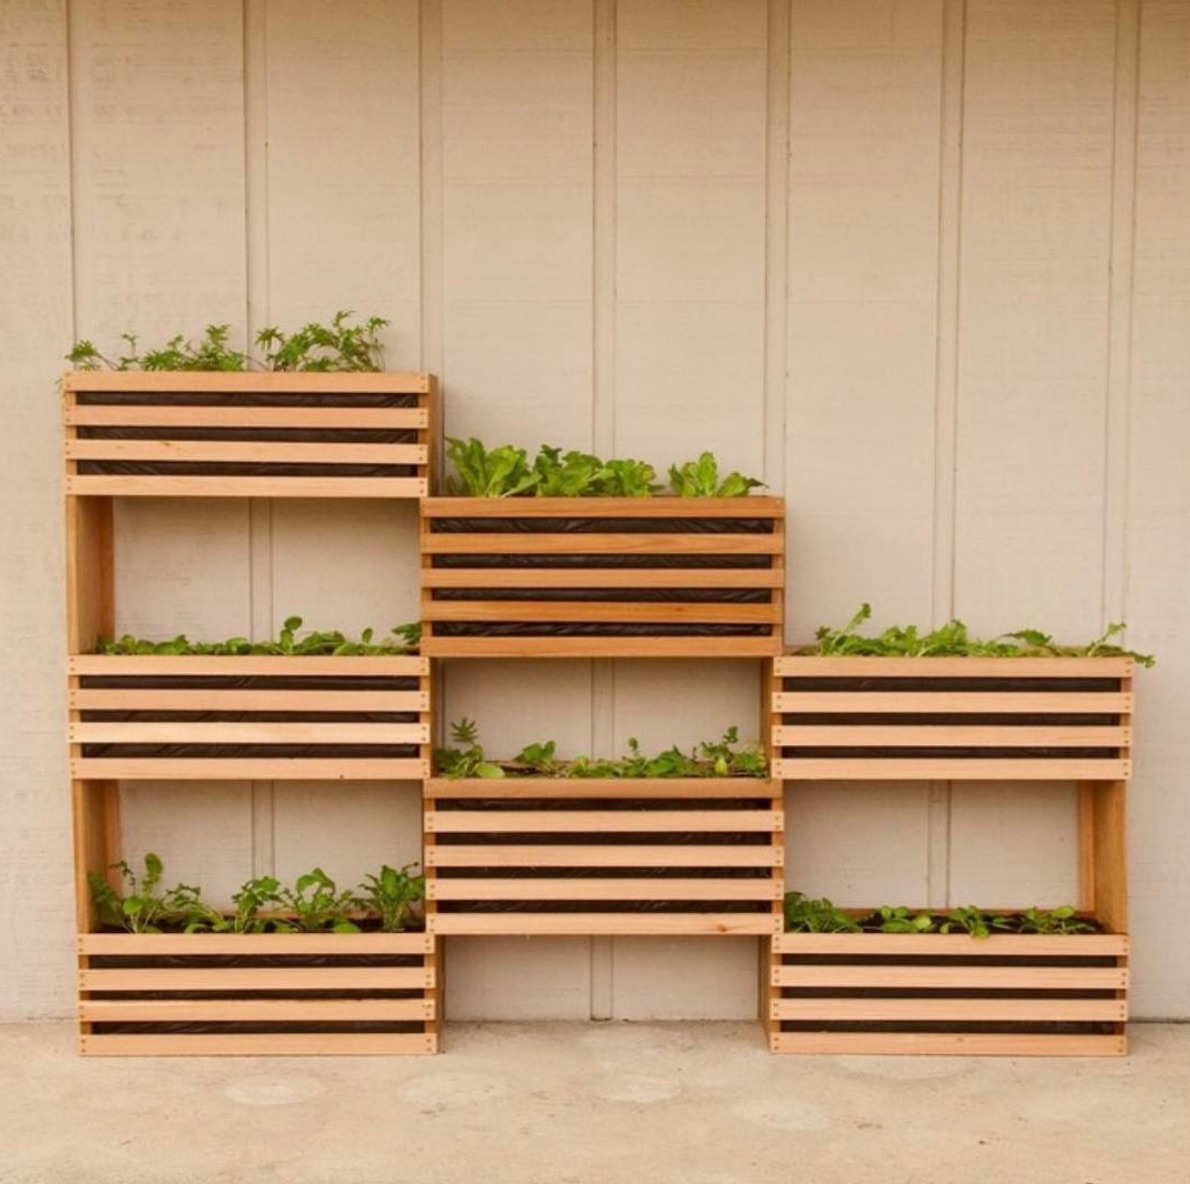 Timber boxes